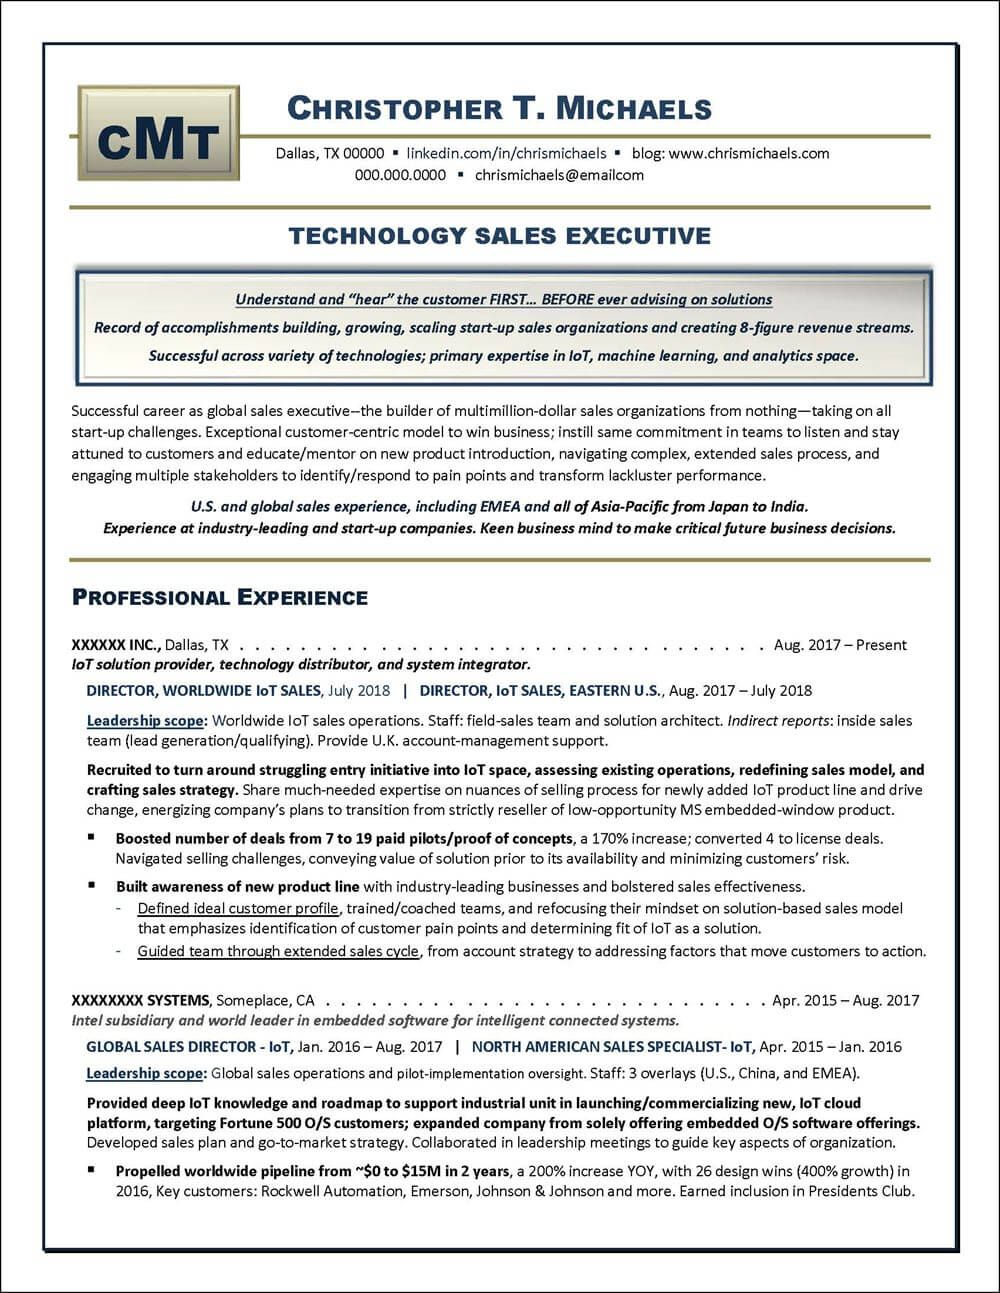 Example Of Technology Sales Executive Resume With Eye Appeal Enhanced By The Use Of Classic Design Element Executive Resume Job Resume Examples Resume Examples